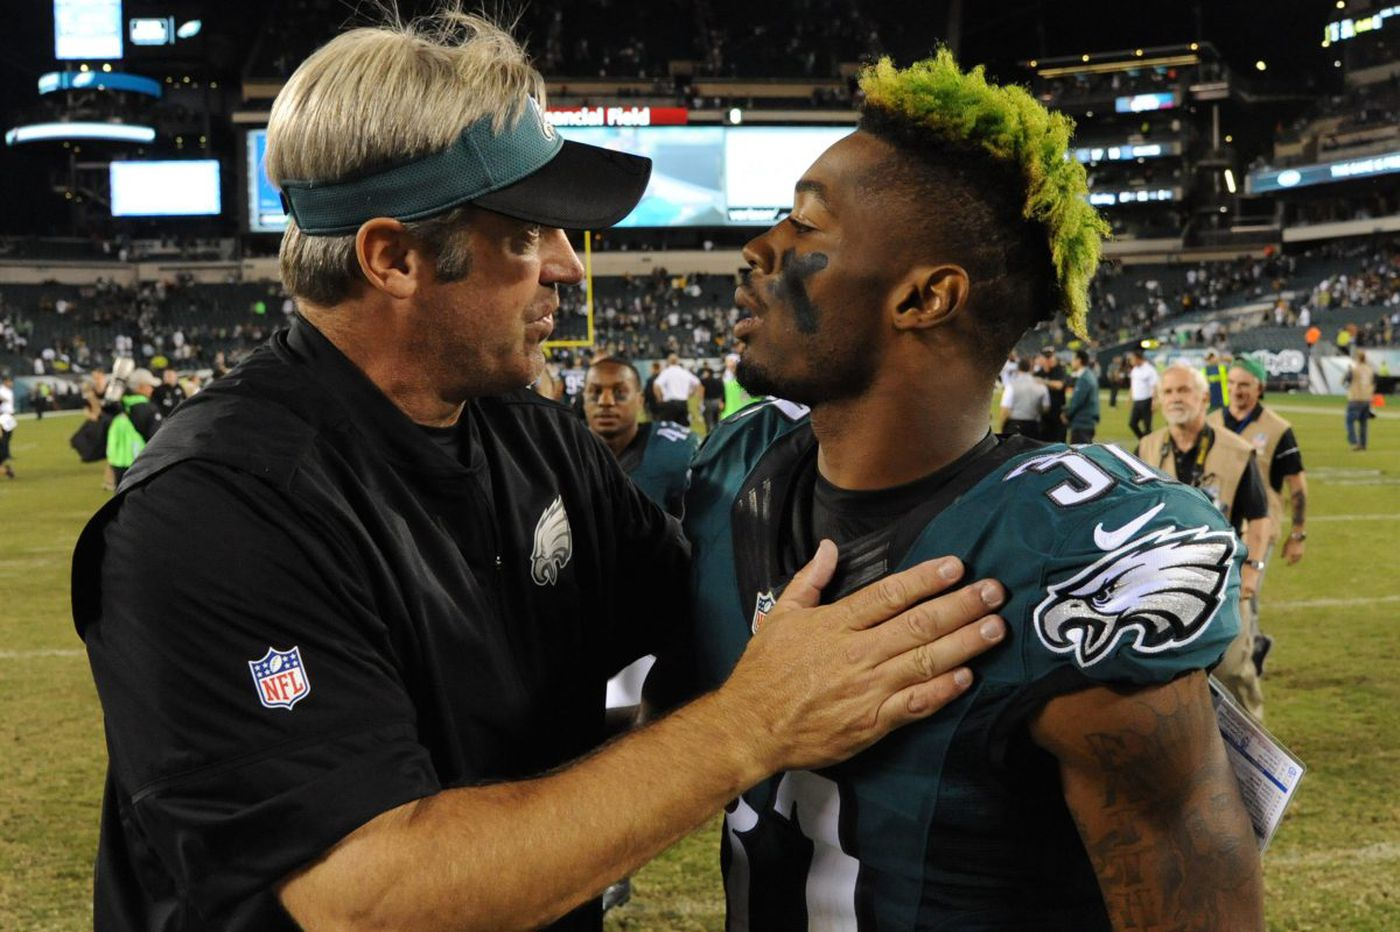 NFL draft preview: Eagles work hard to find character players